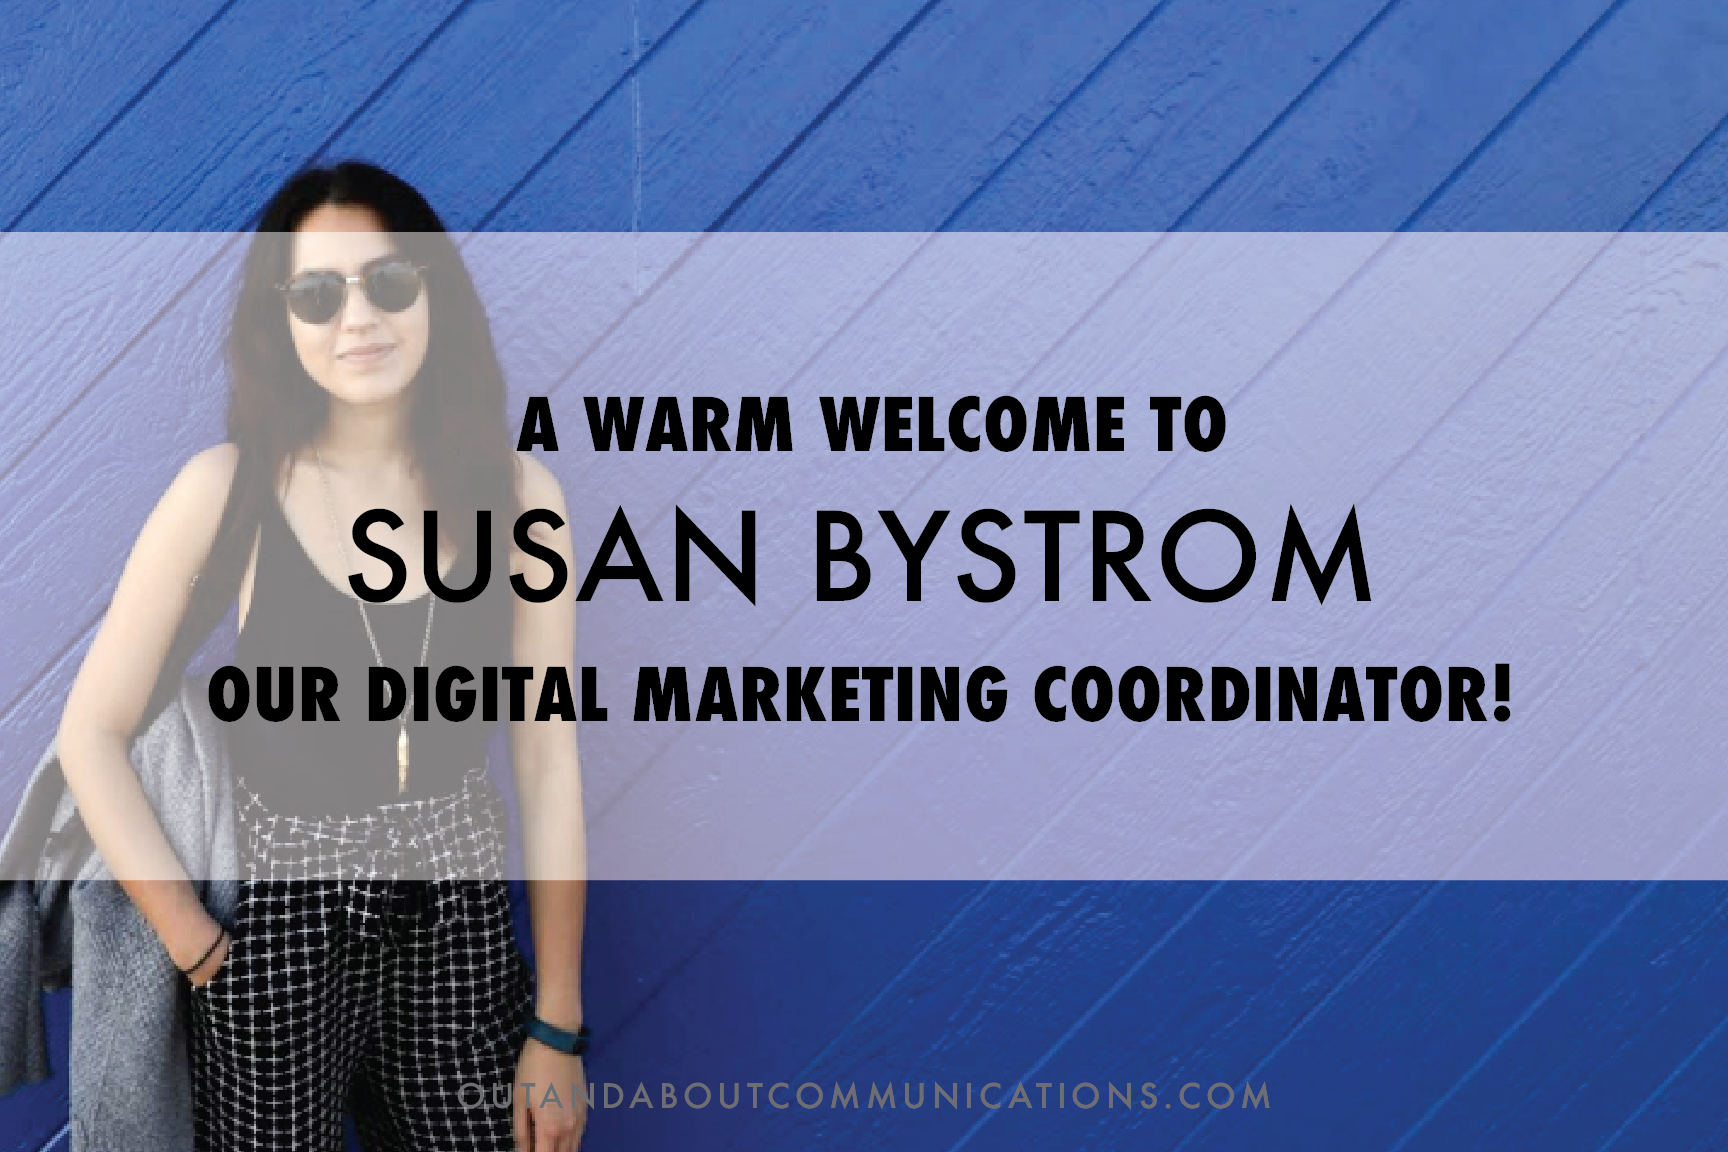 A Warm Welcome to Our Digital Marketing Coordinator, Susan Bystrom!